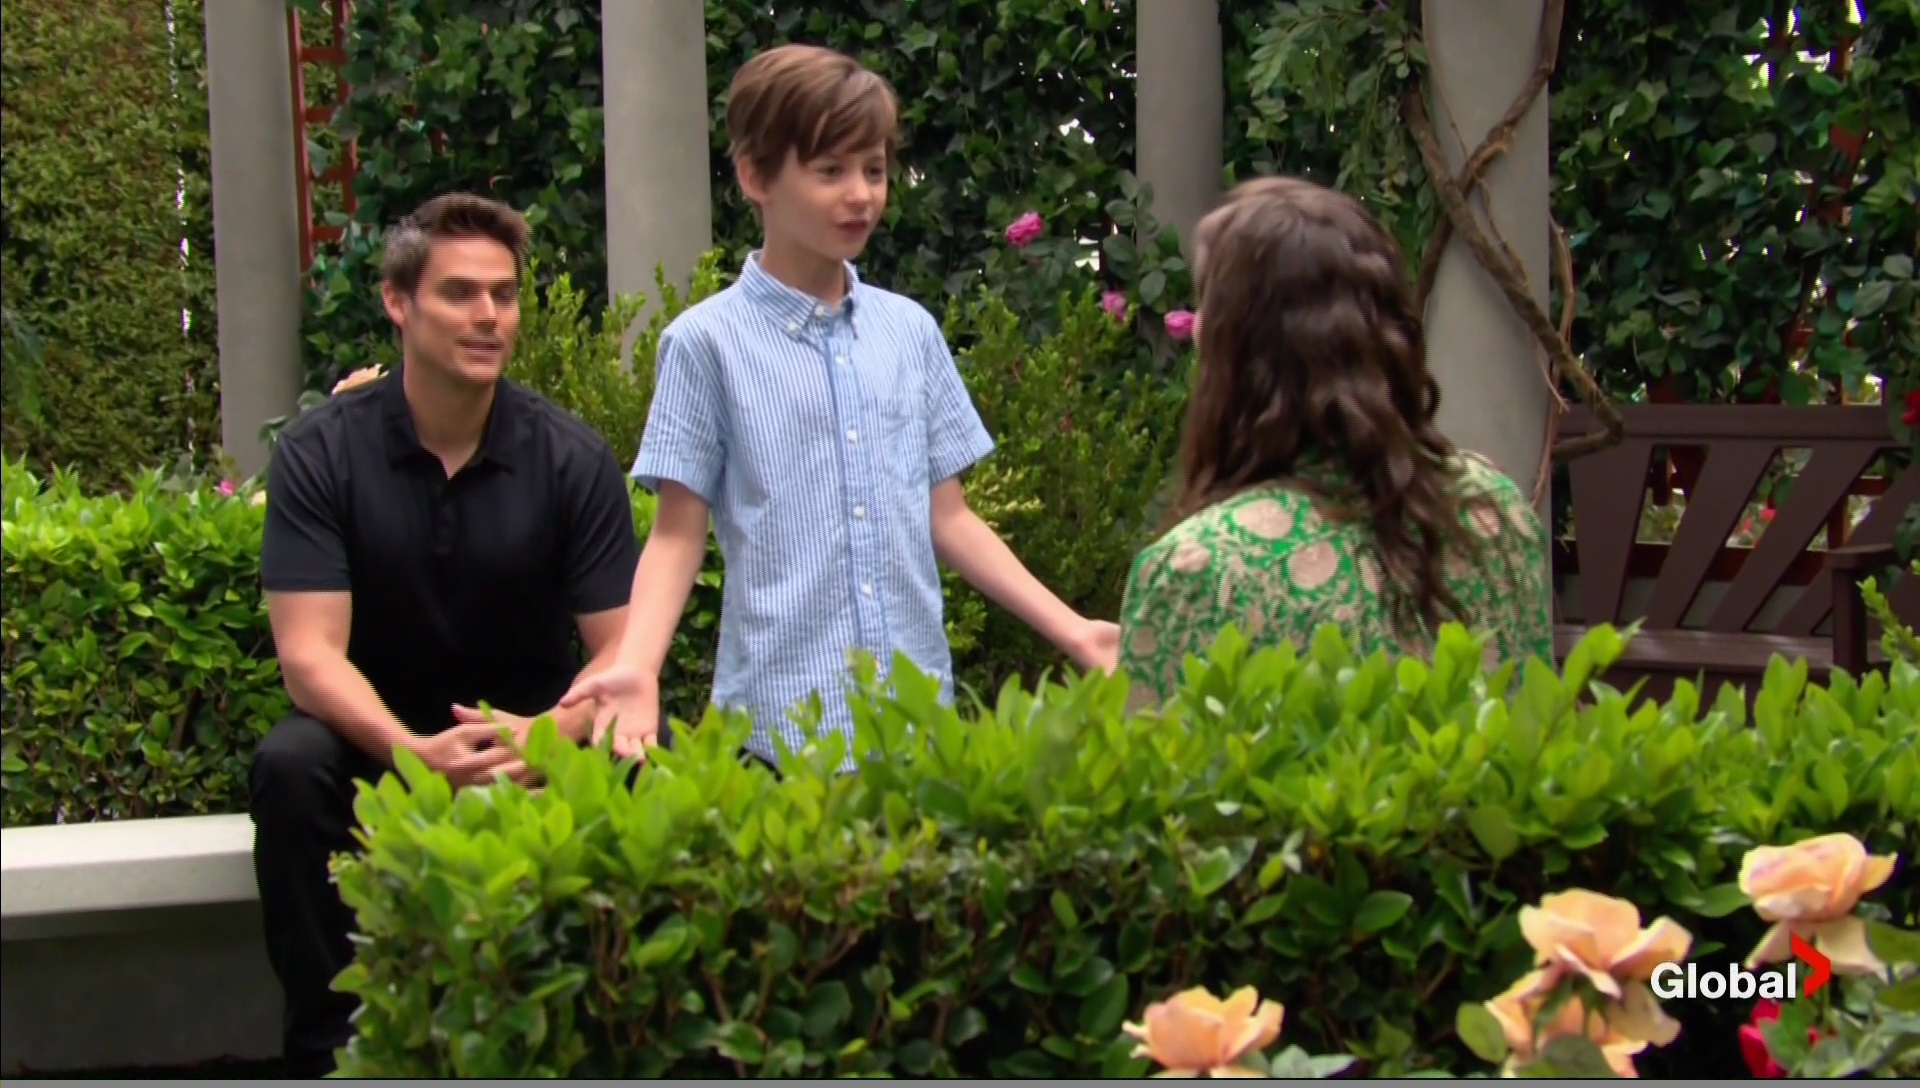 connor adorable young restless